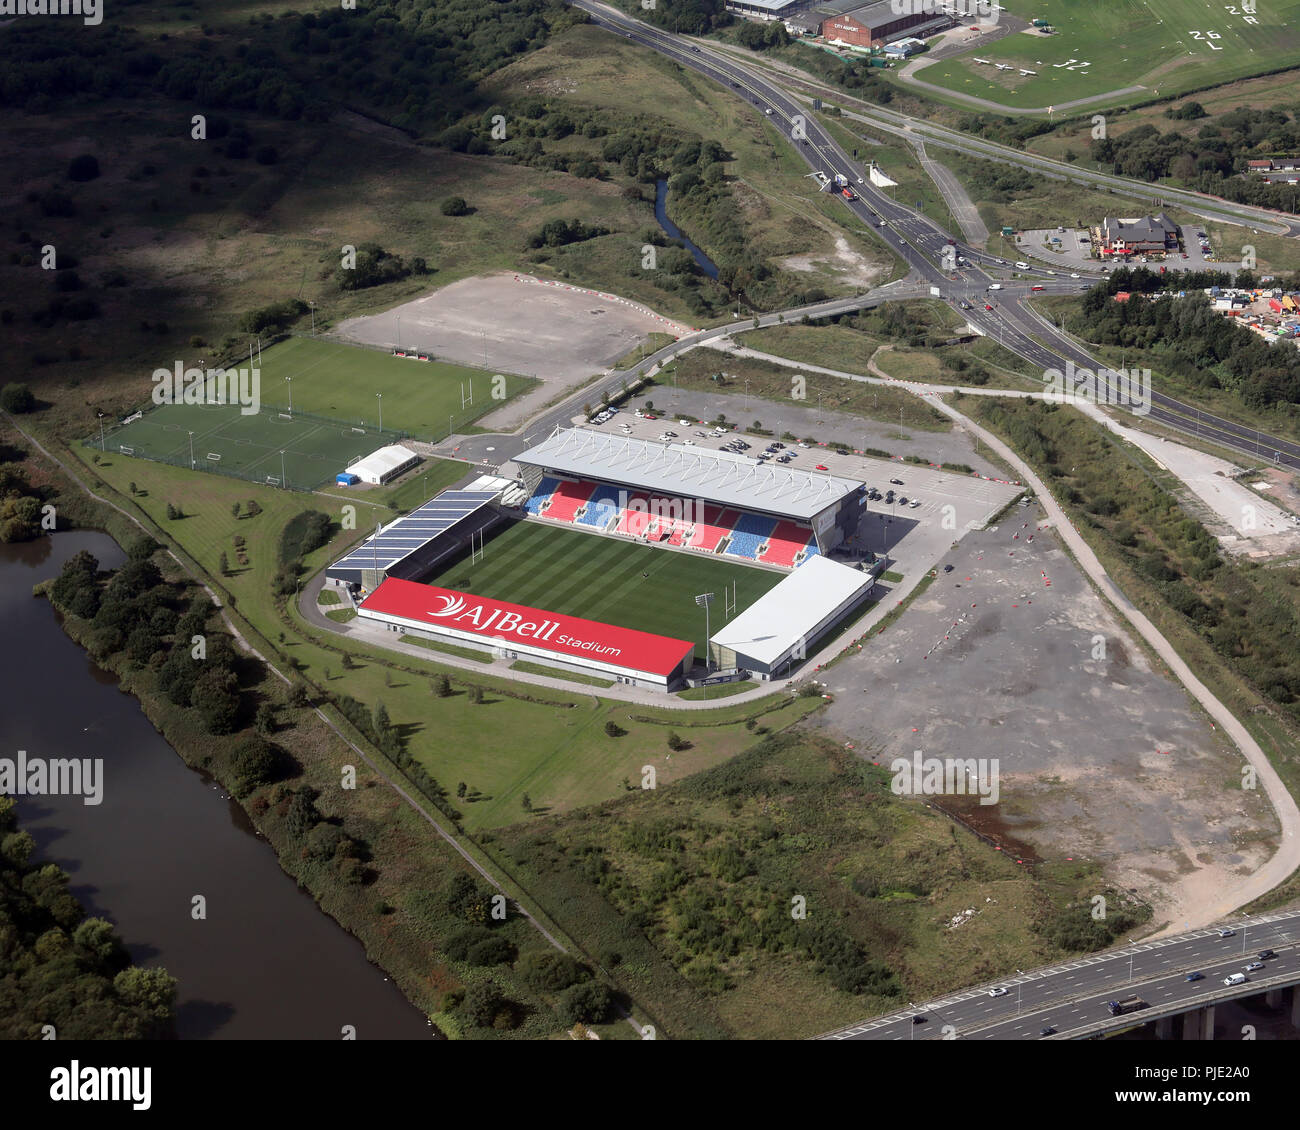 aerial view of the AJ Bell Stadium, Barton, Manchester - Stock Image